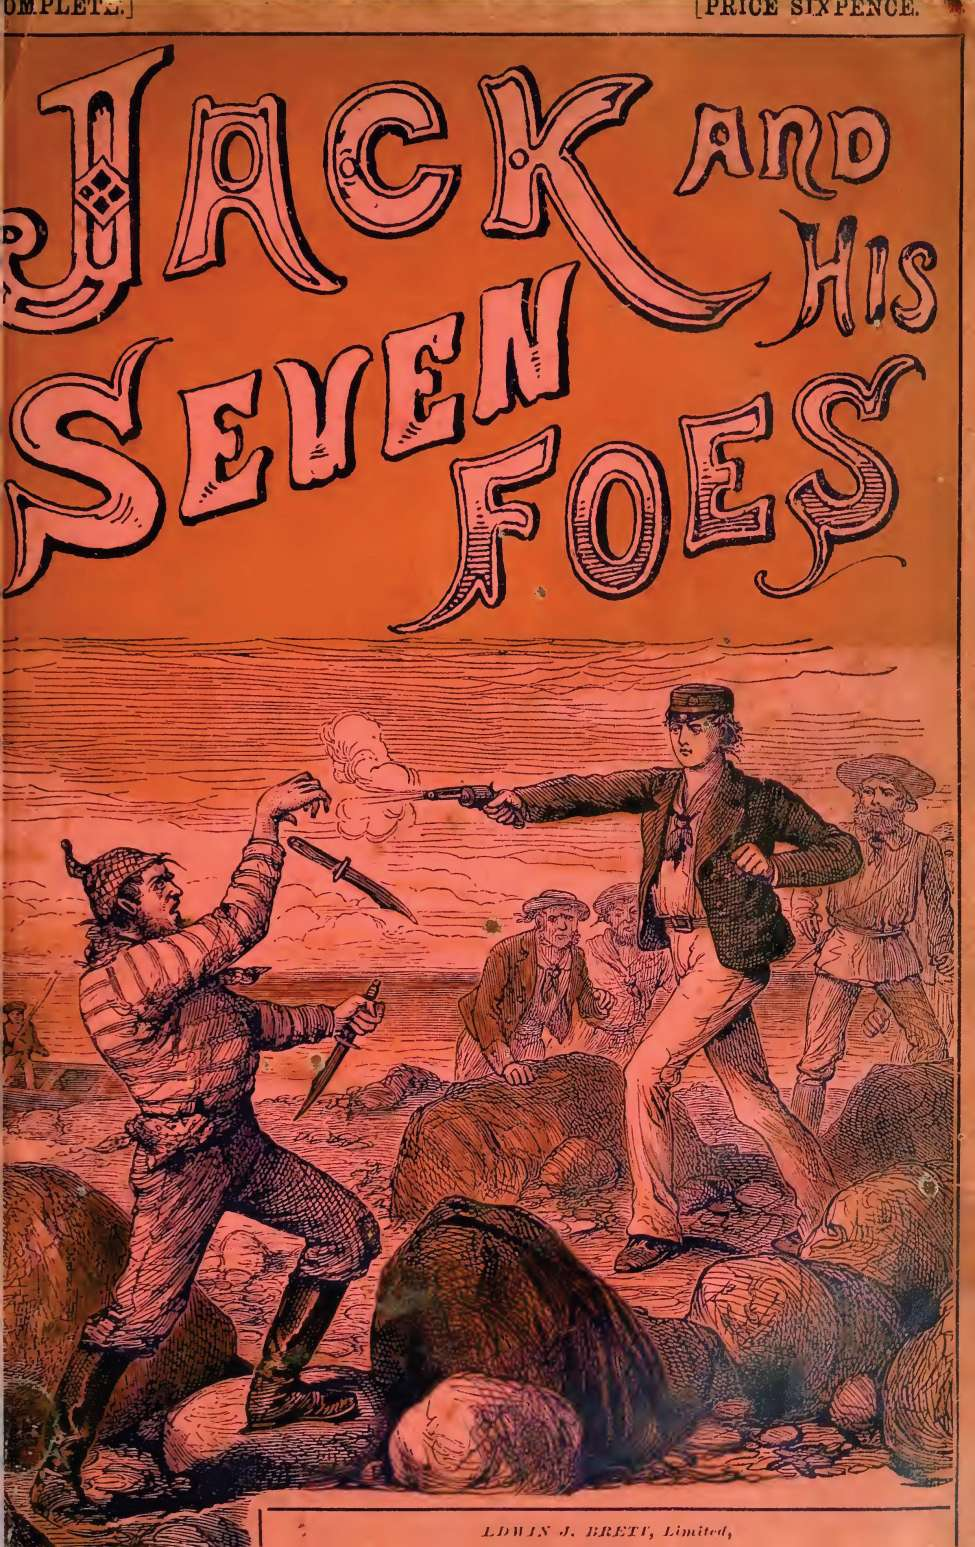 Comic Book Cover For Jack and His Seven Foes